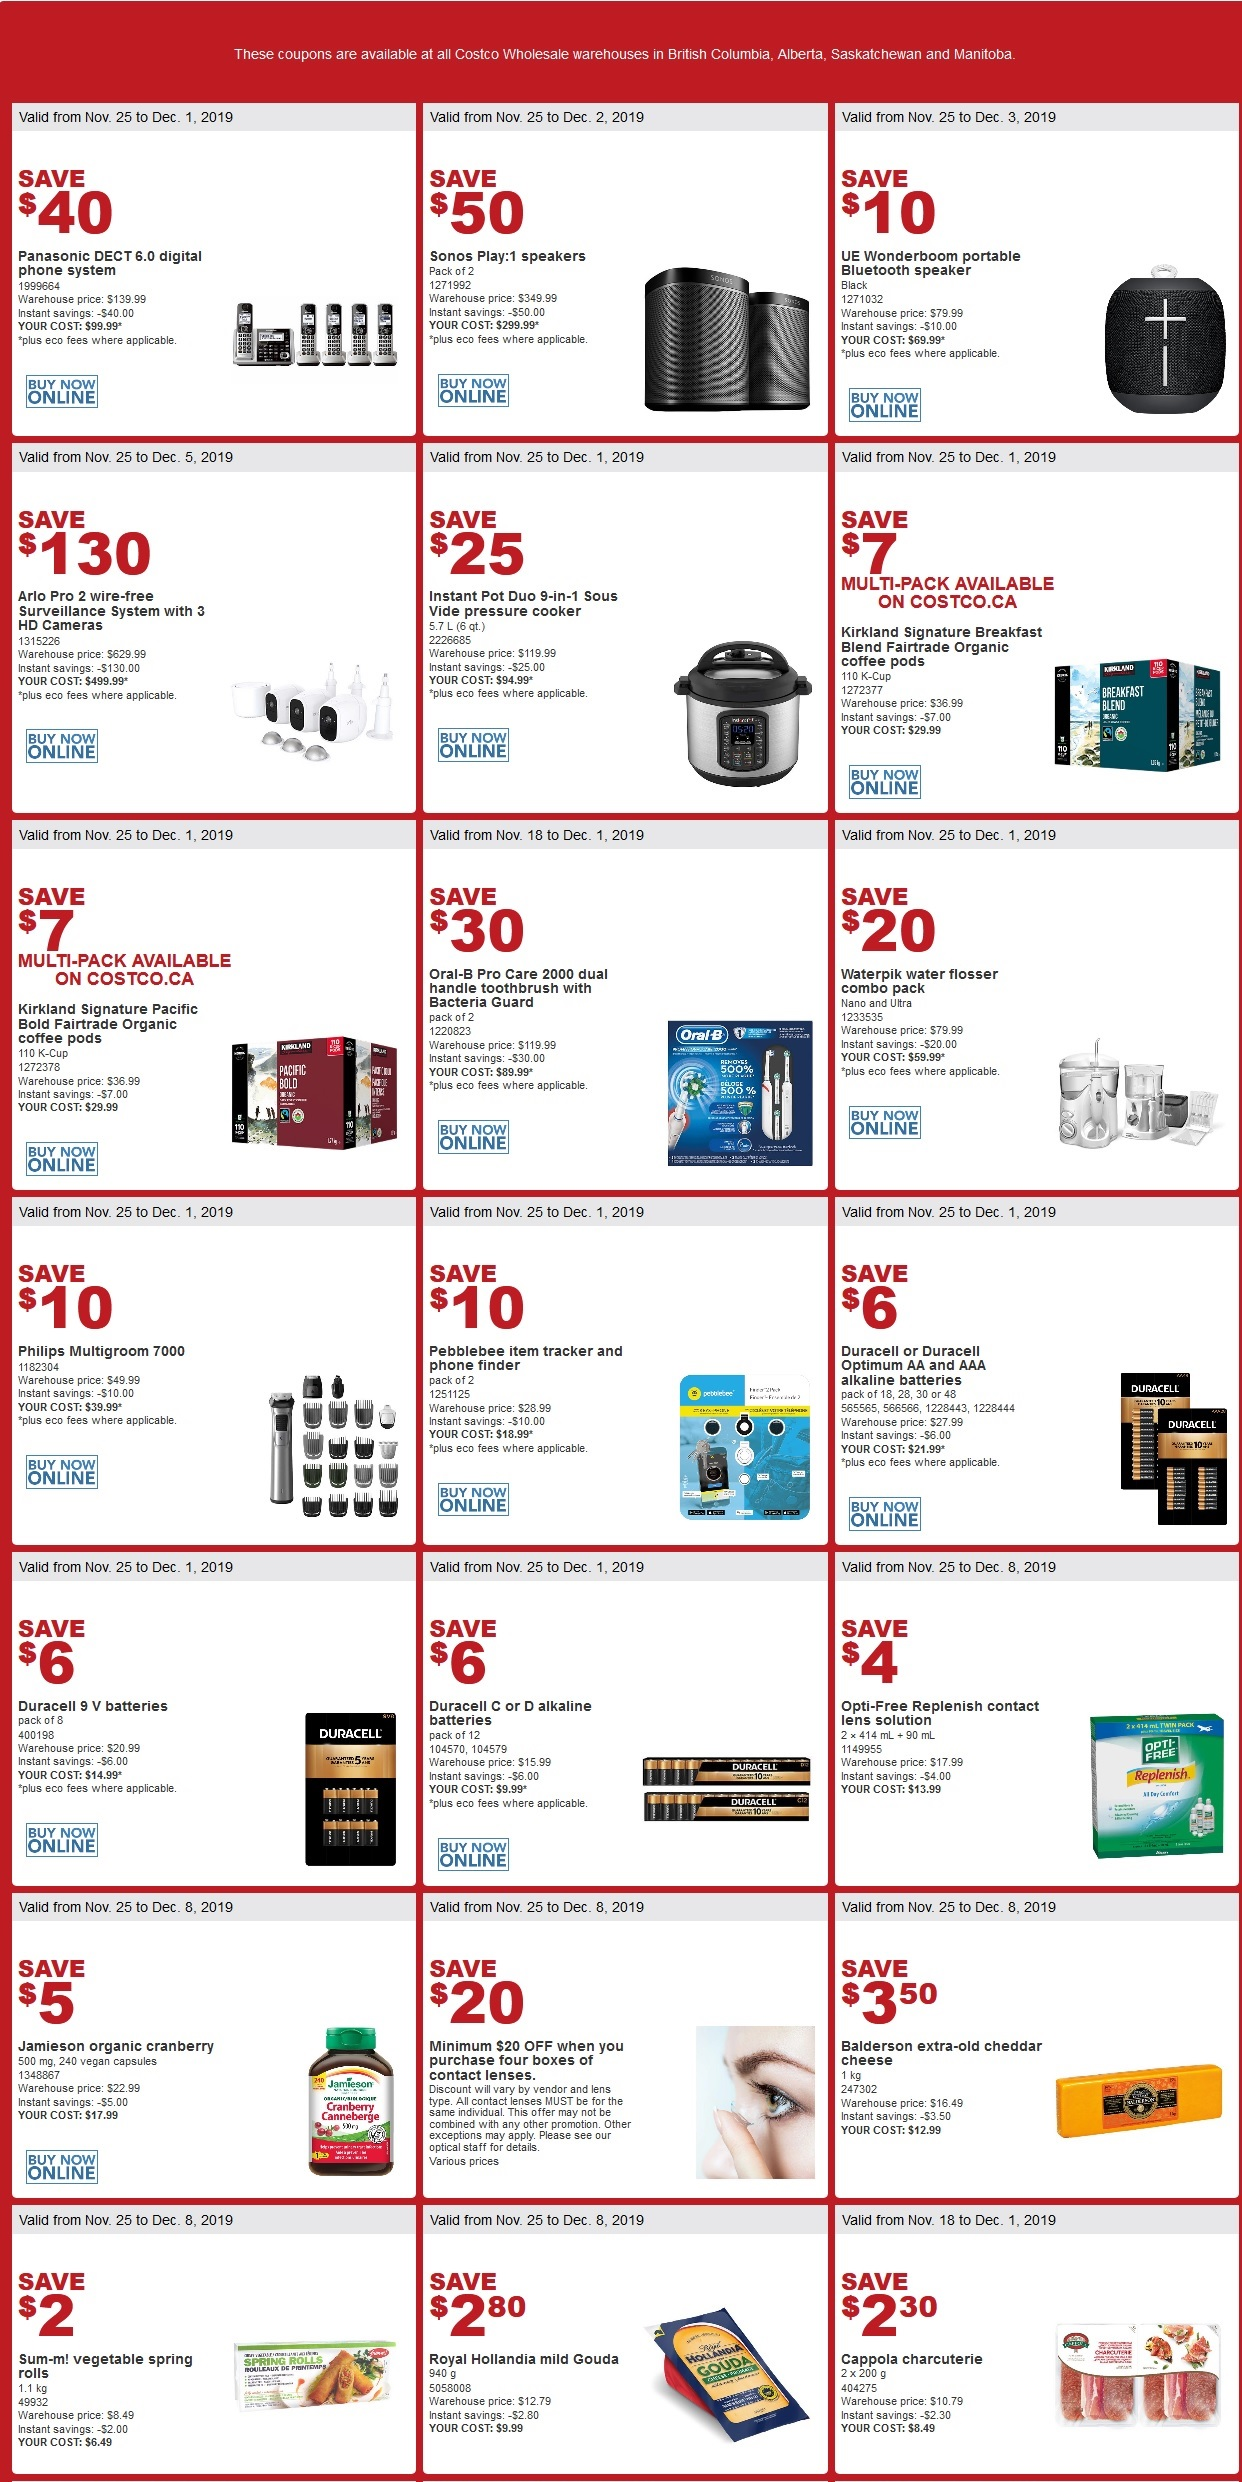 Costco Flyer for Oct Nov 25-Dec 12019 for BC, AB, SK, MB